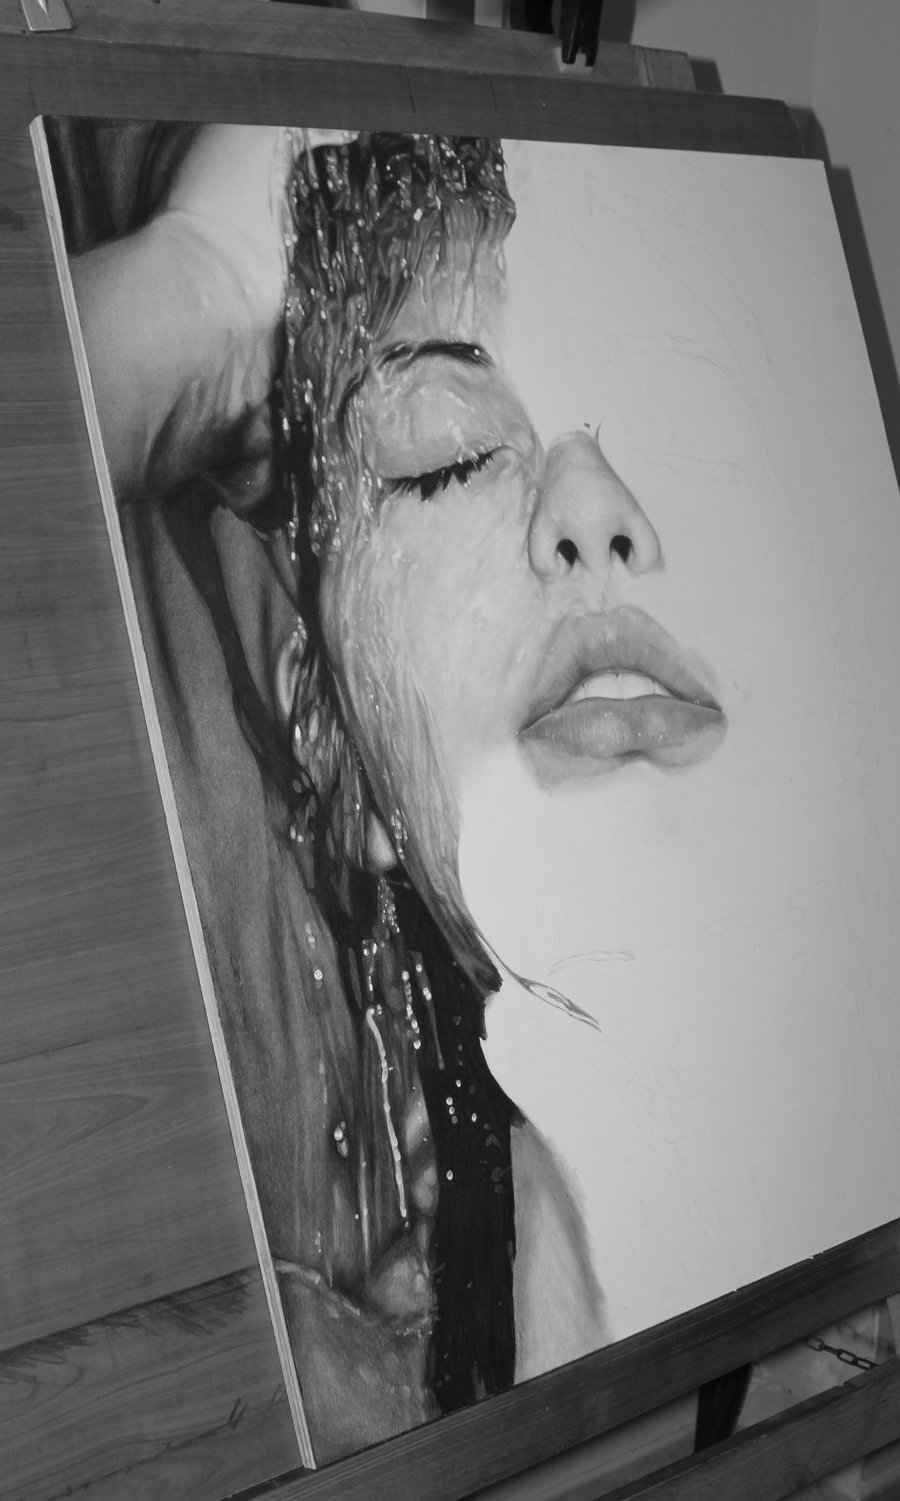 Diegokoi is a professional artist he drawn a lot of amazing pencil drawing which we feel just like photos here we posting some of his talents